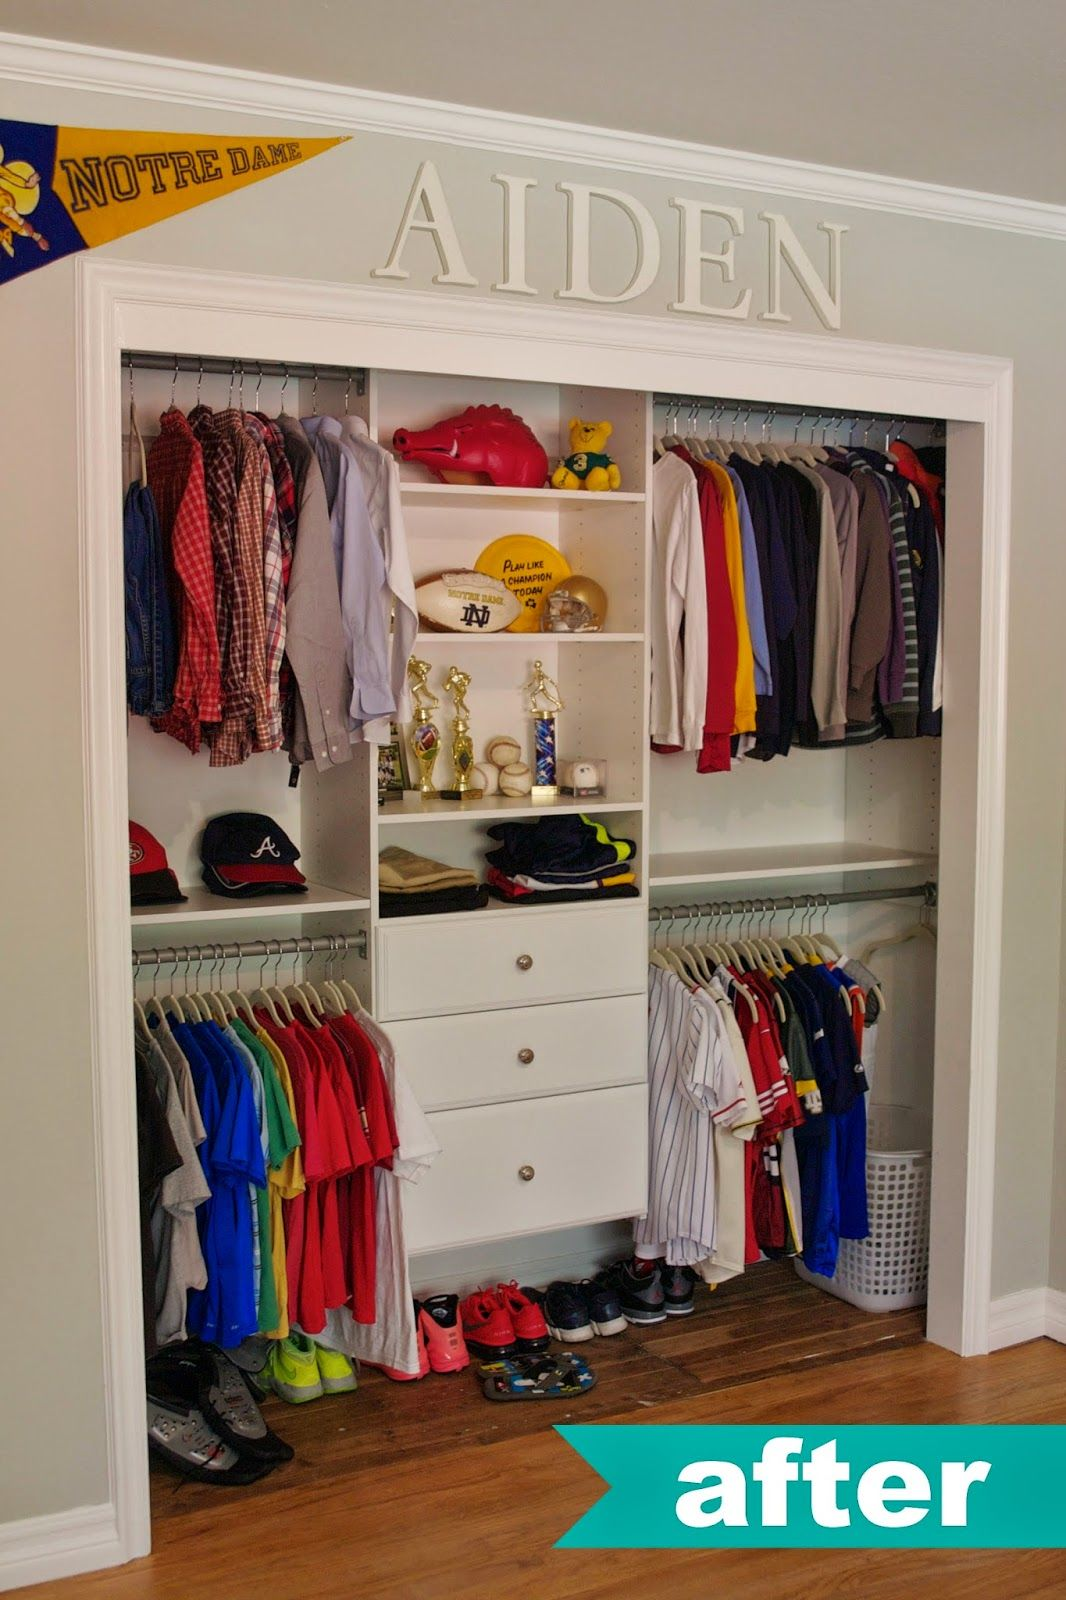 Kids closet organization ideas pinterest martha for Kids room storage ideas